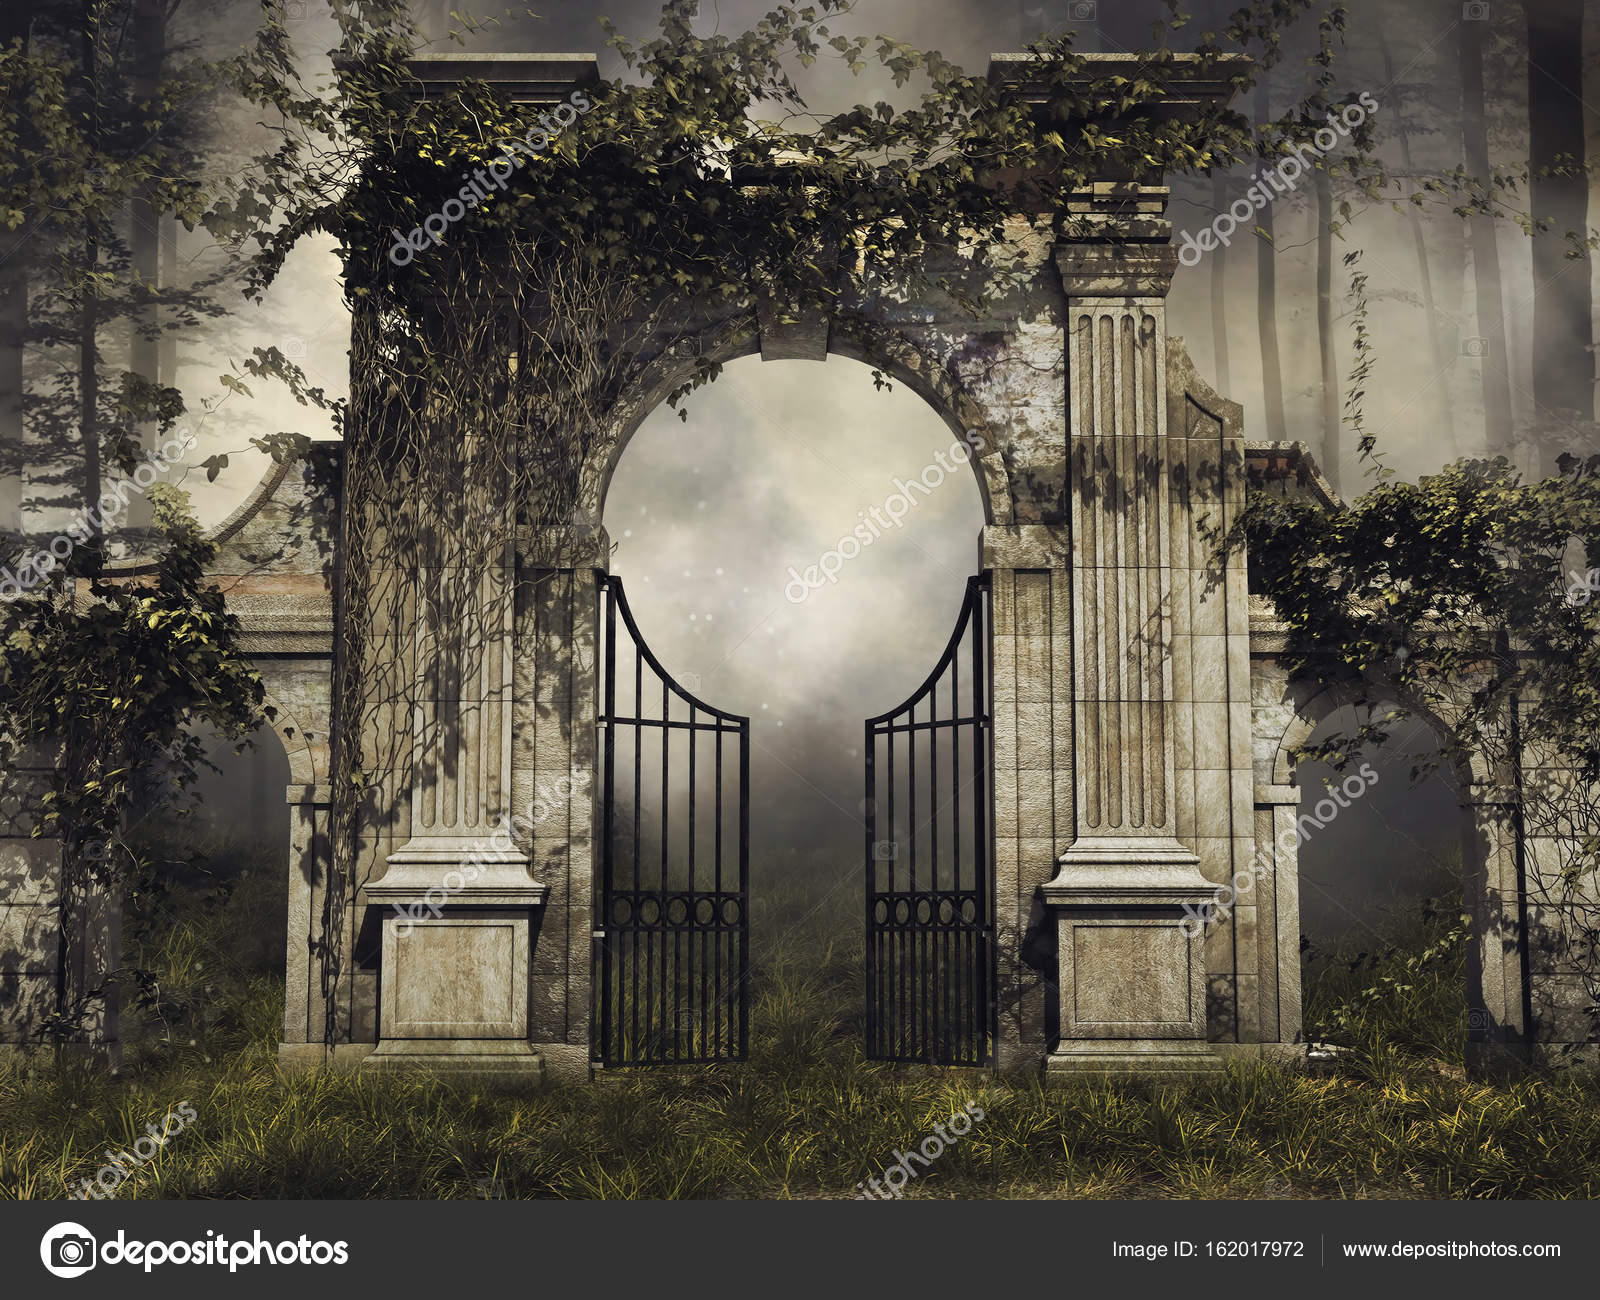 Superieur Dark Scenery With A Gothic Garden Gate And Vines In A Forest U2014 Photo By  FairytaleDesign